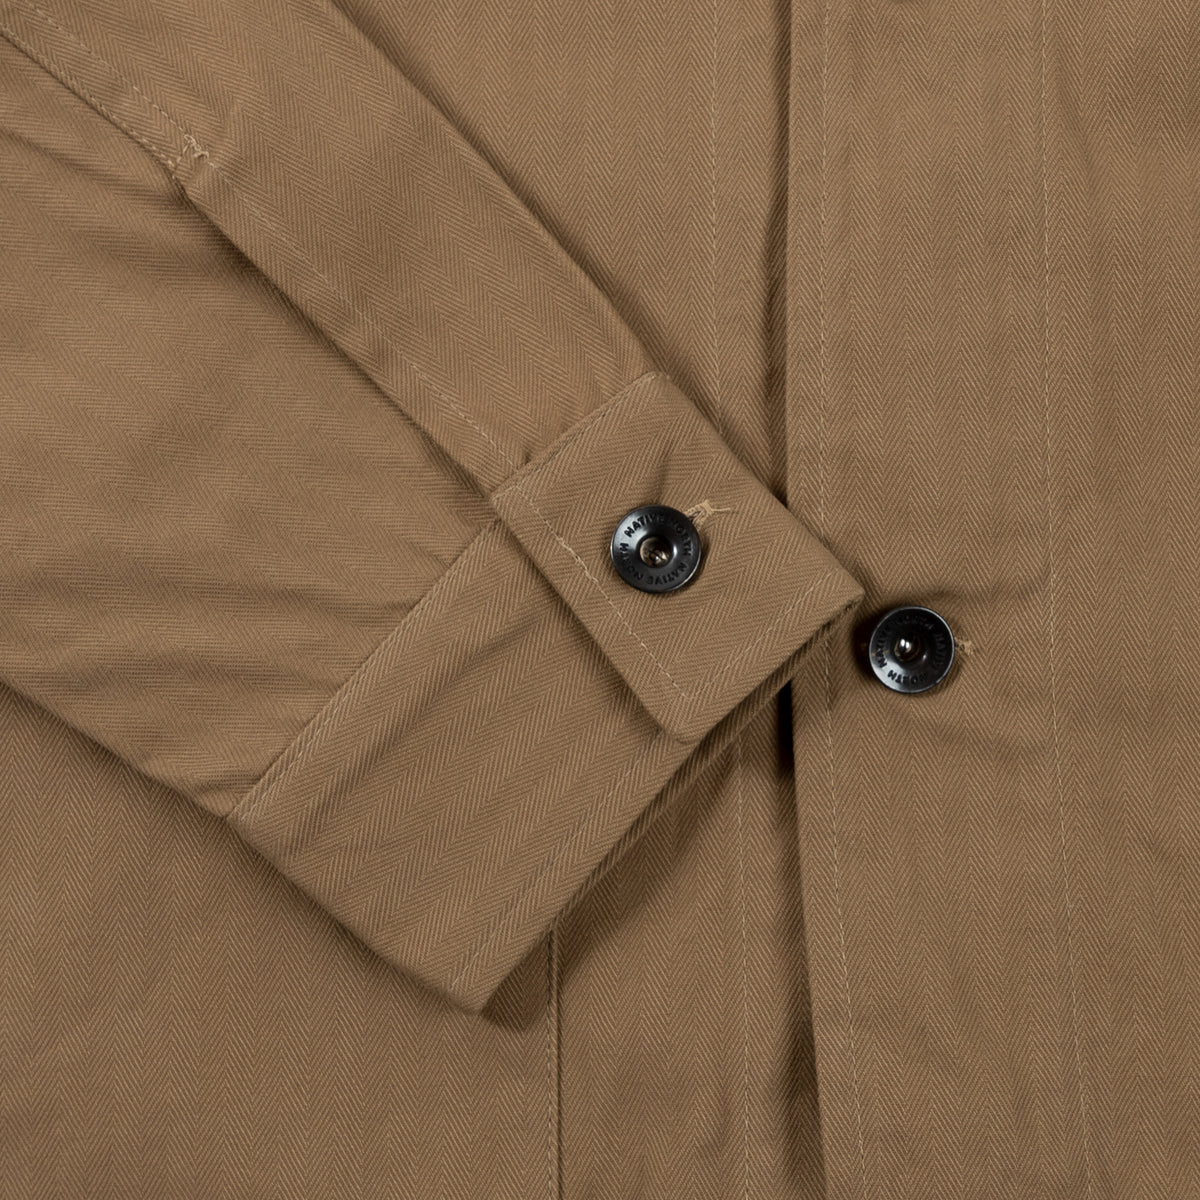 Native North Herringbone Utility Jacket Outerwear Khaki Cuff Detail